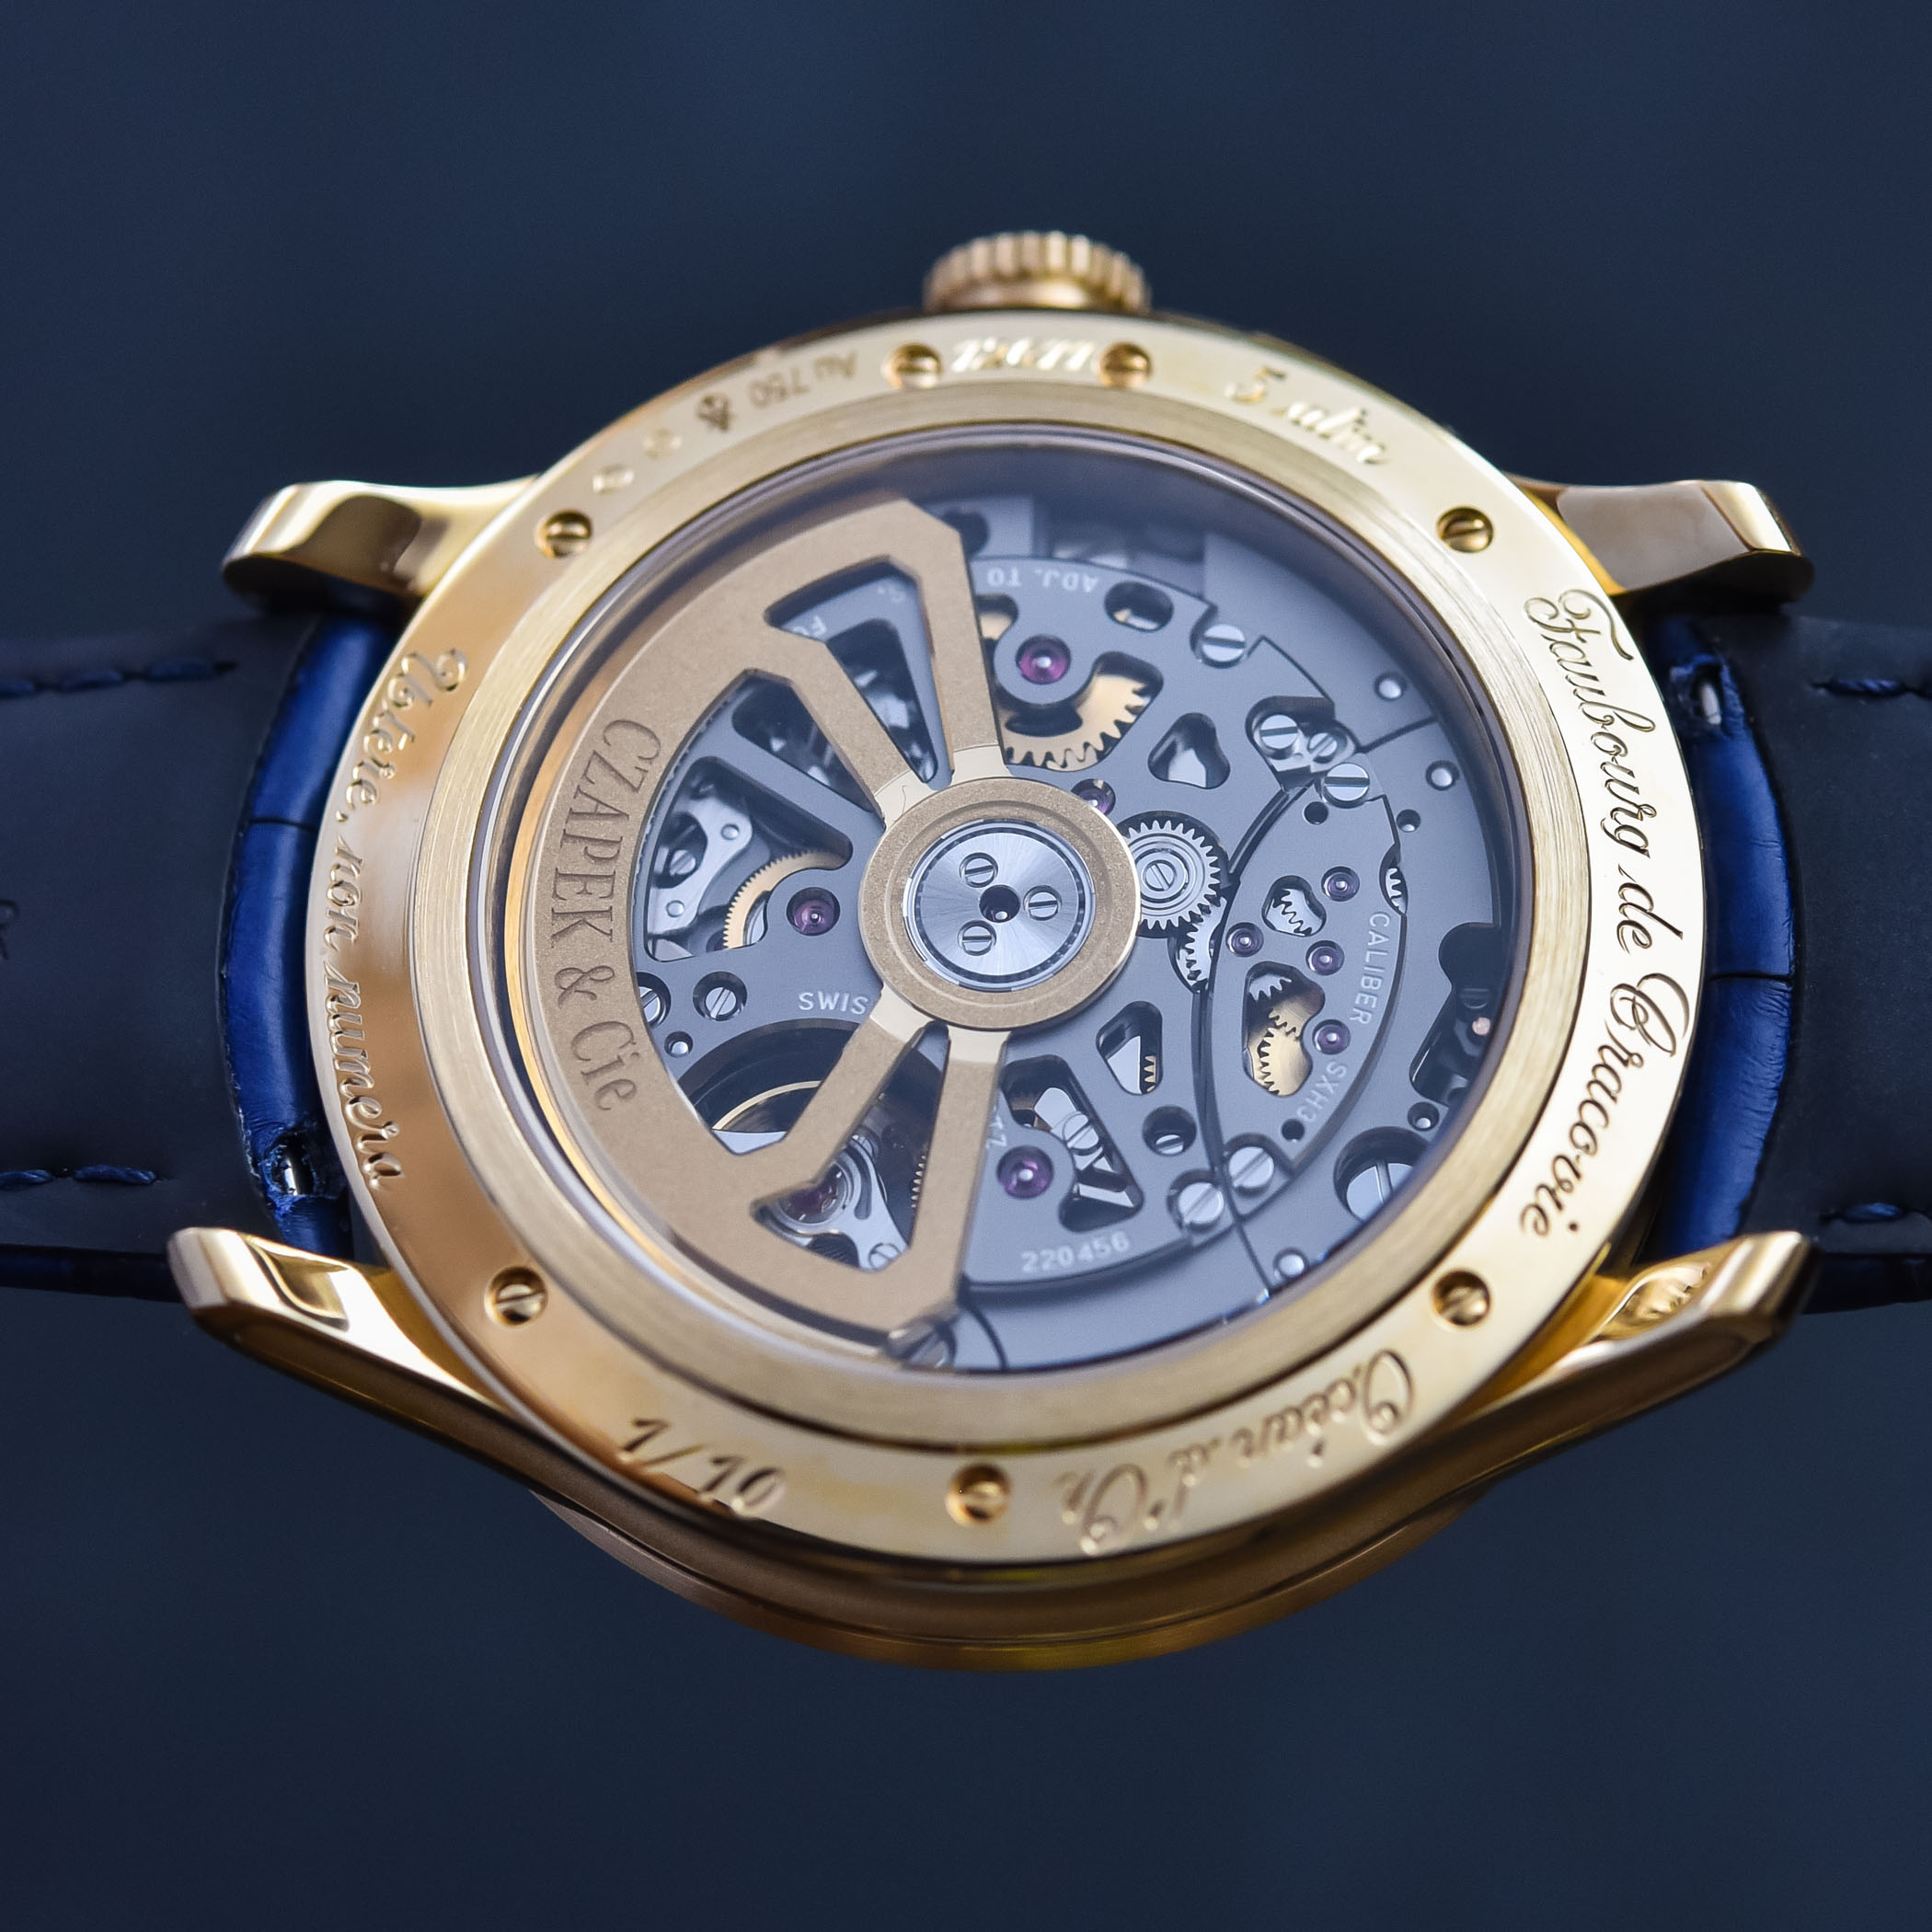 Czapek Faubourg de Cracovie Ocean d'Or Chronograph - 6